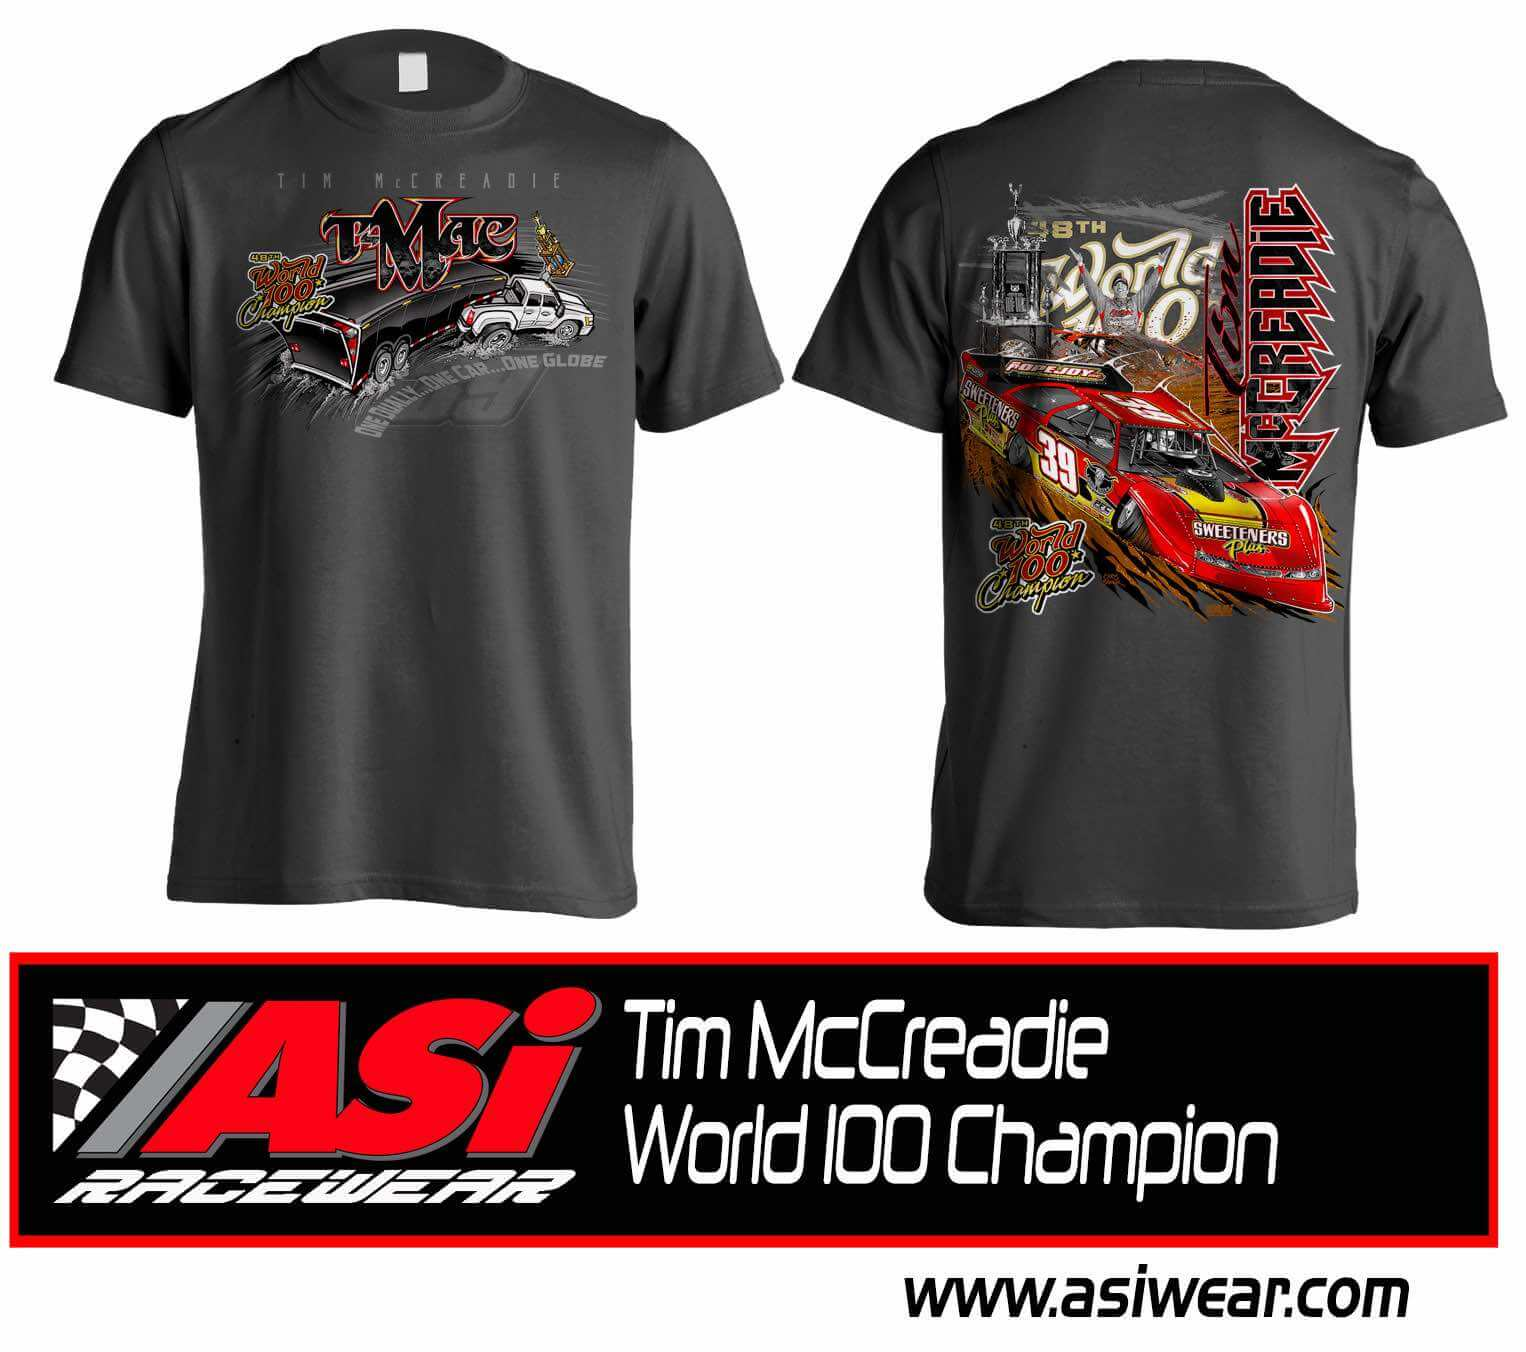 Tim McCreadie - Trailer Shirt